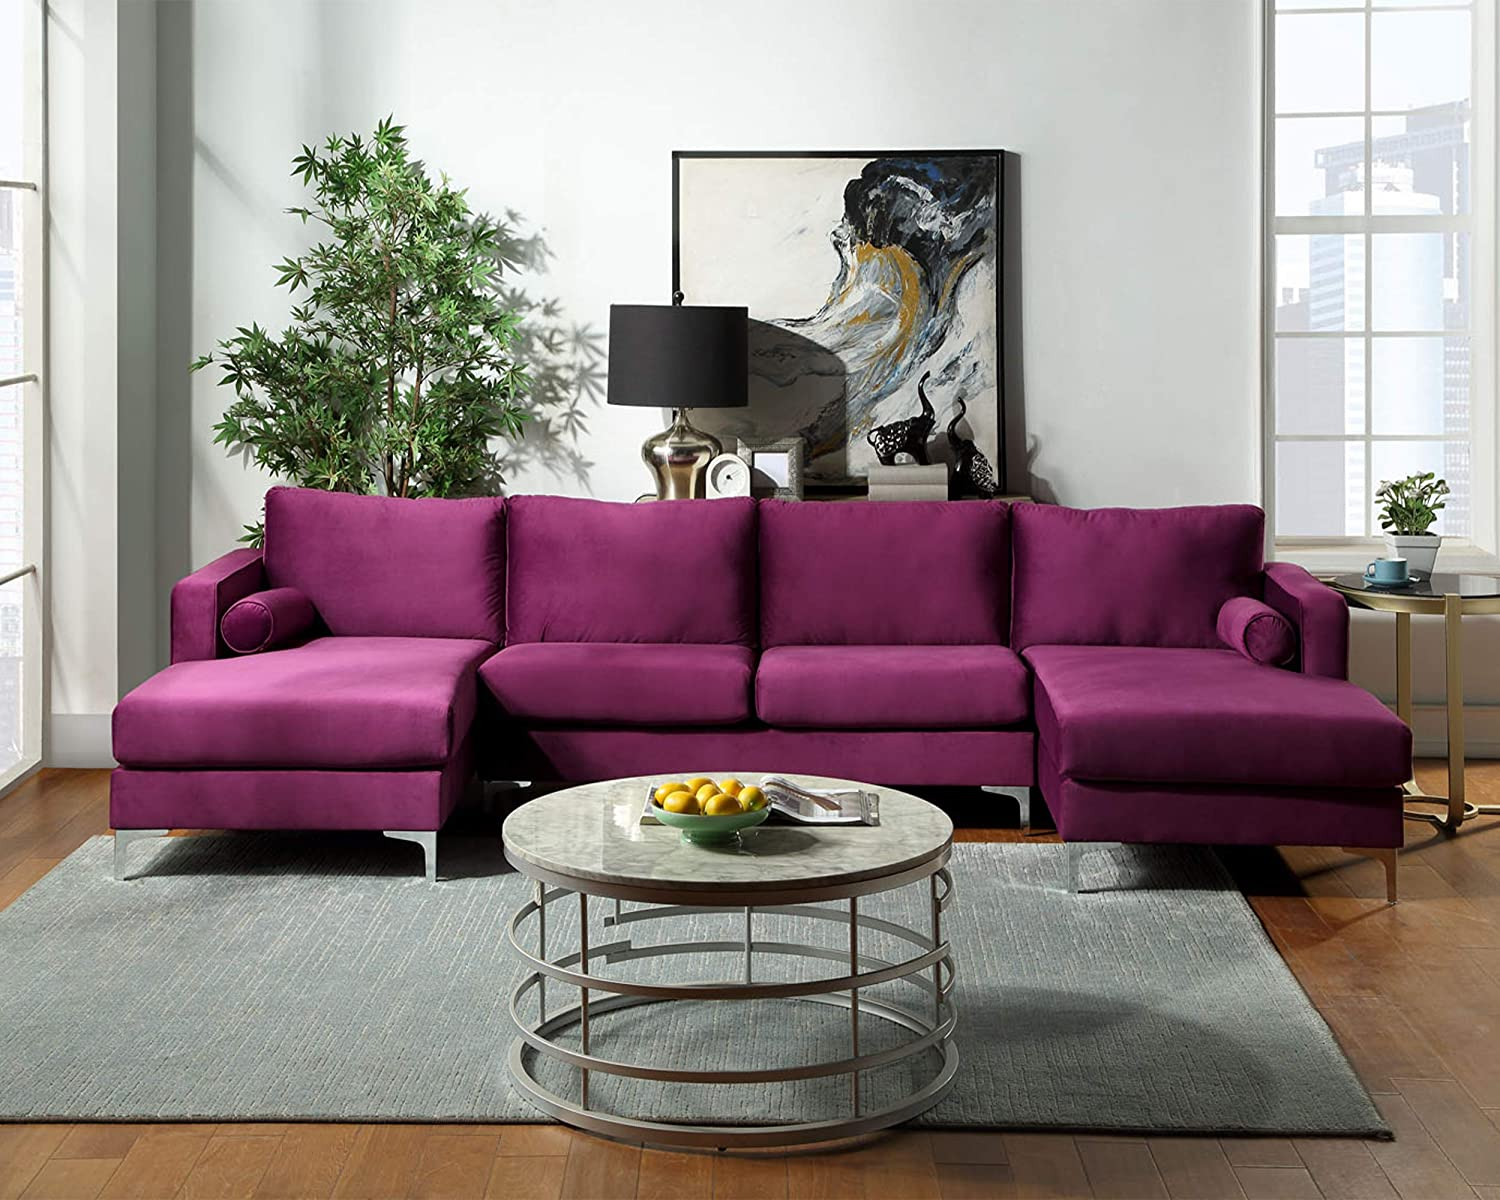 GAOPAN Modern Upholstered Soft Velvet Fabric 4 Seater U-Shape Sectional Sofa Set with Two Pillows and Double Extra Wide Chaise Lounge Couch for Home Conversation & Living Room Furniture,Purple